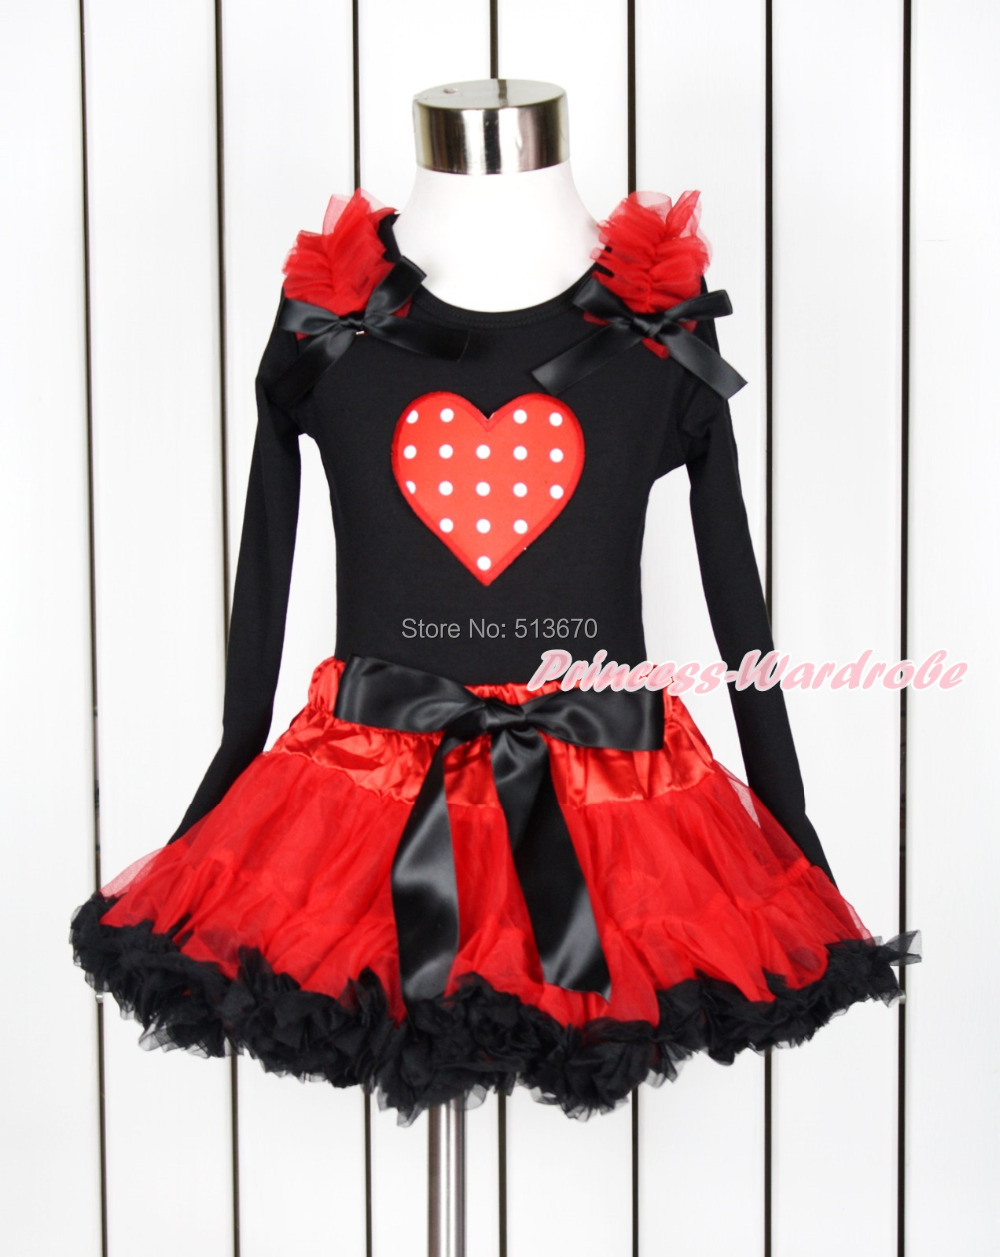 Valentine Red White Polka Dot Heart Black Pettitop Hot Red Black Pettiskirt 1-8Y MAPSA0107 xmas red orange yellow black roses brown top baby girl pettiskirt outfit 1 8y mapsa0038